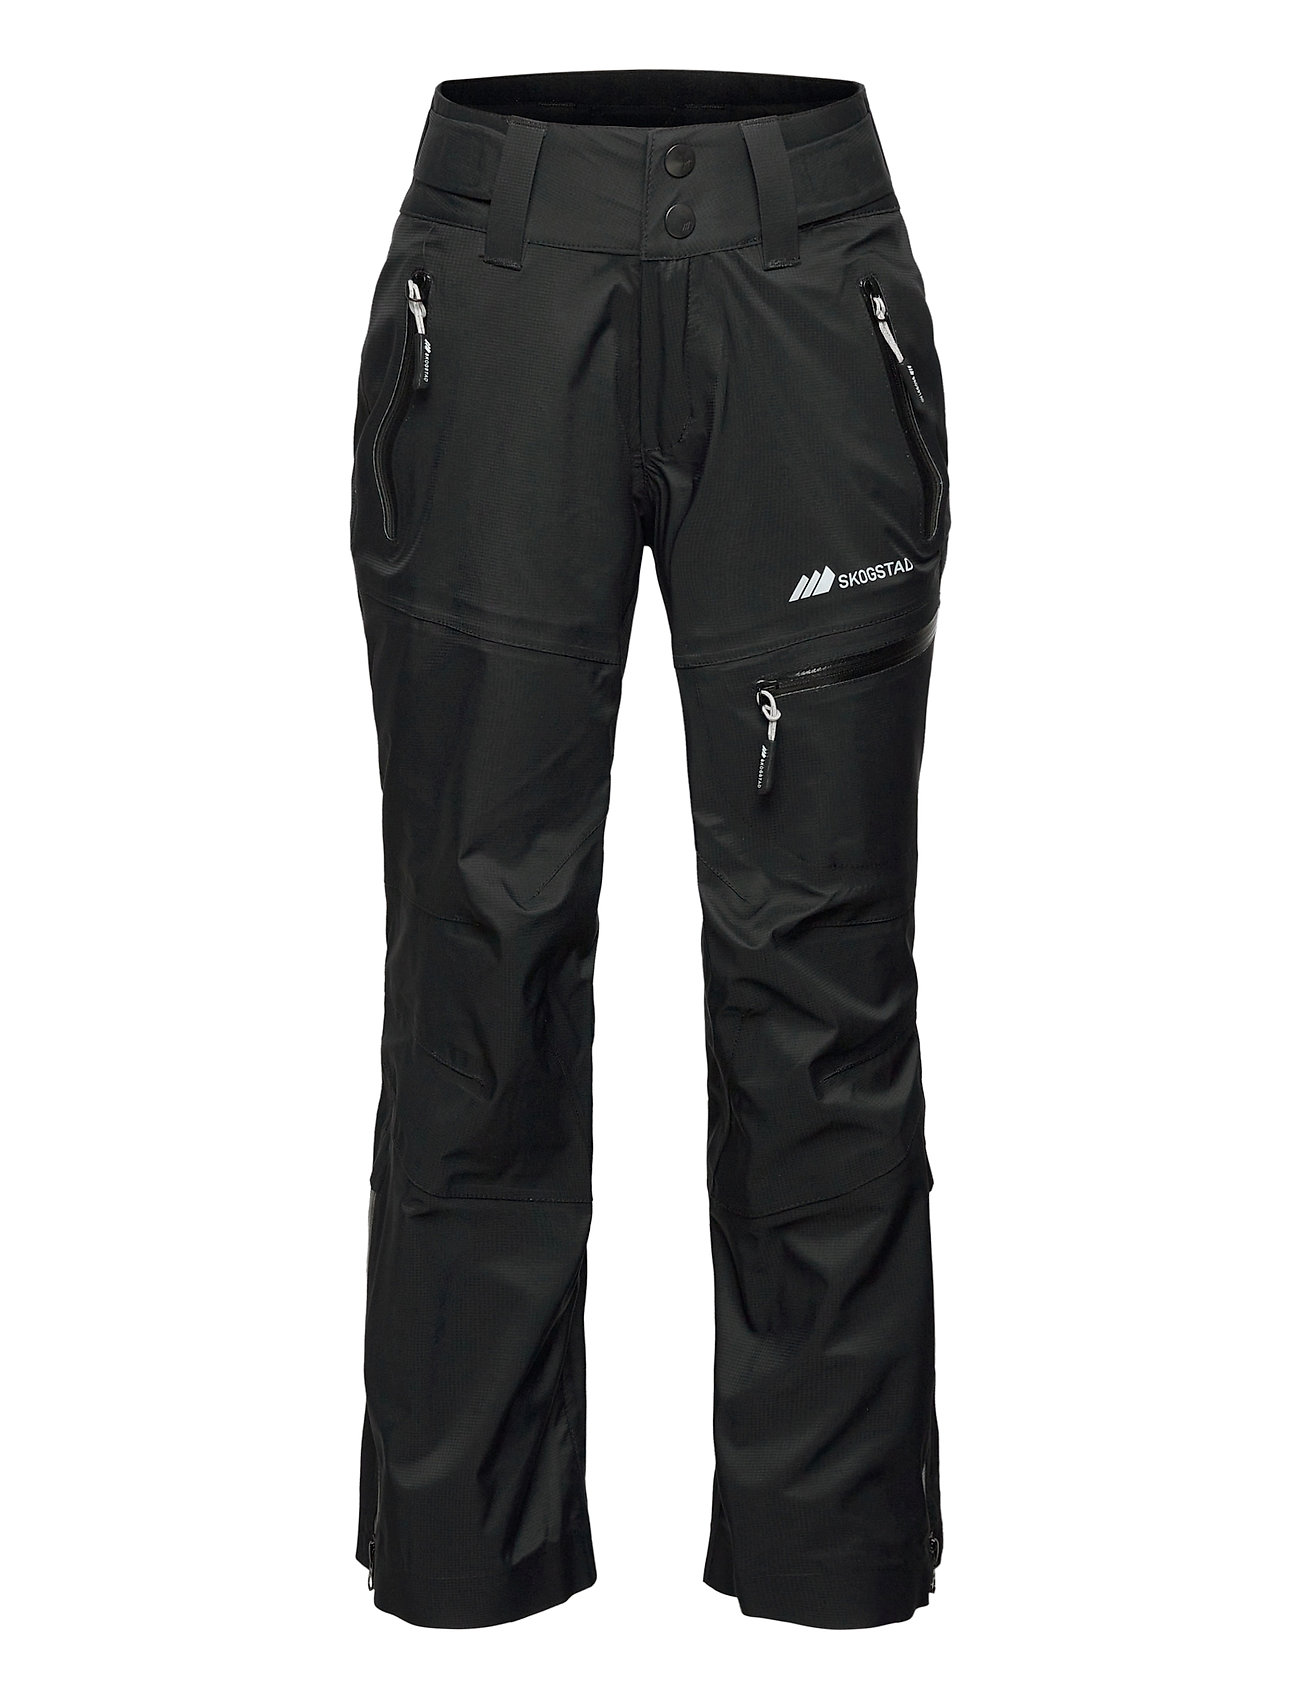 Skogstad Narvik 3-layer technical shell trouser - BLACK